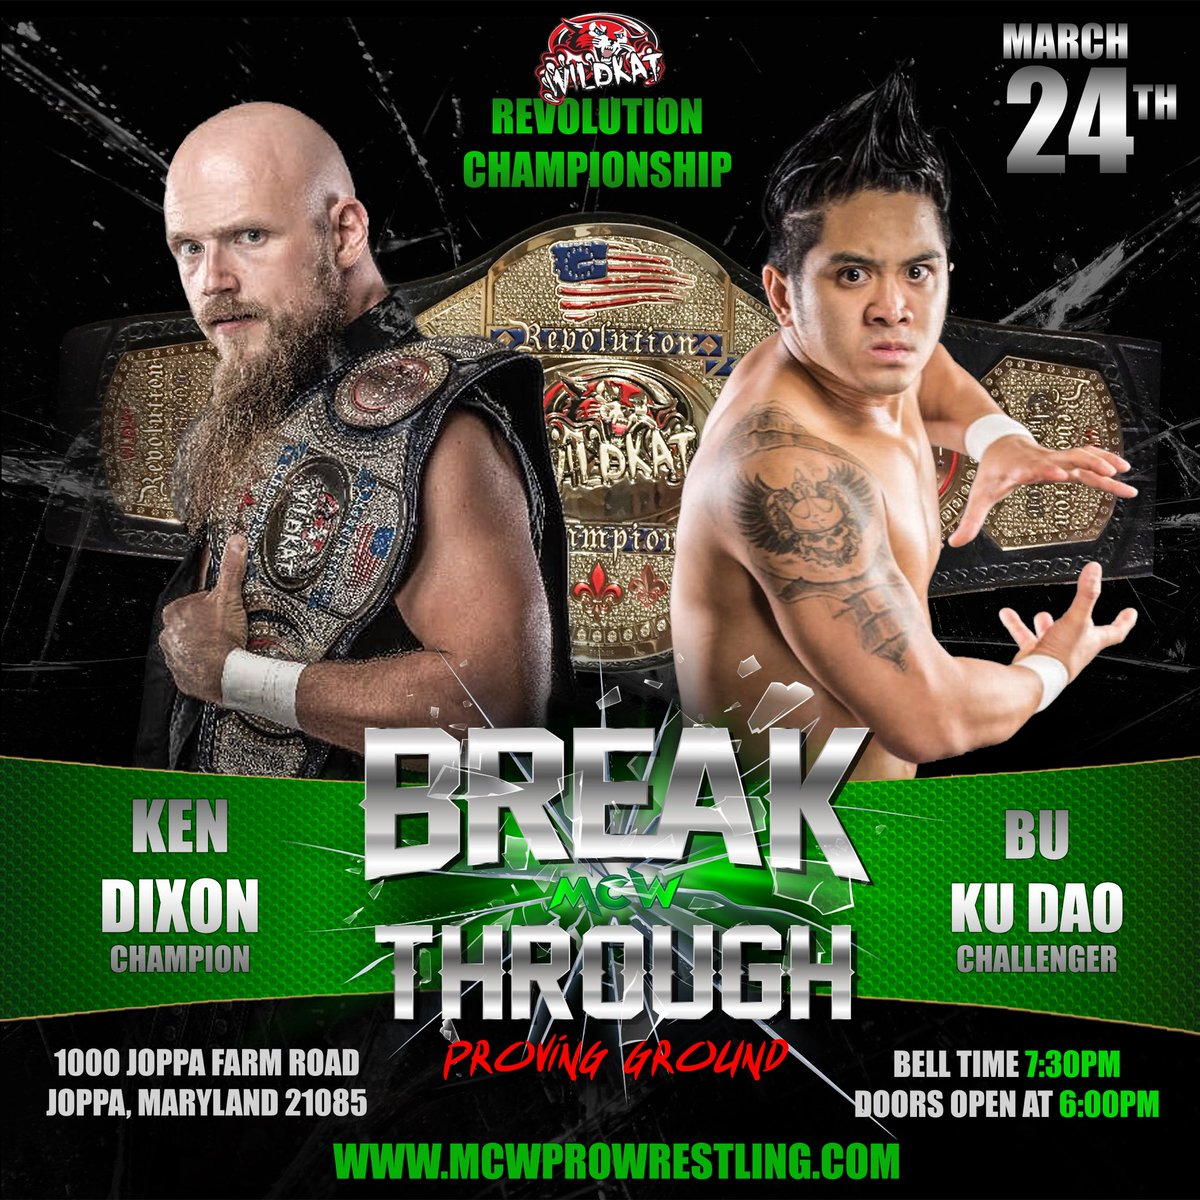 As announced during the interview between @WildKatSports Head Trainer @LukeHawx504 &amp; #MCW GM @PSPhenom, @The_KenDixon will defend the Wildkat Revolution Title against #TheSituAsian @BuKuDaoOrDie on Sat 3/24 at #MCWBreakthrough: Proving Ground! #RAW   http:// MCWProWrestling.com  &nbsp;   4 tix!<br>http://pic.twitter.com/a9IujAERGz